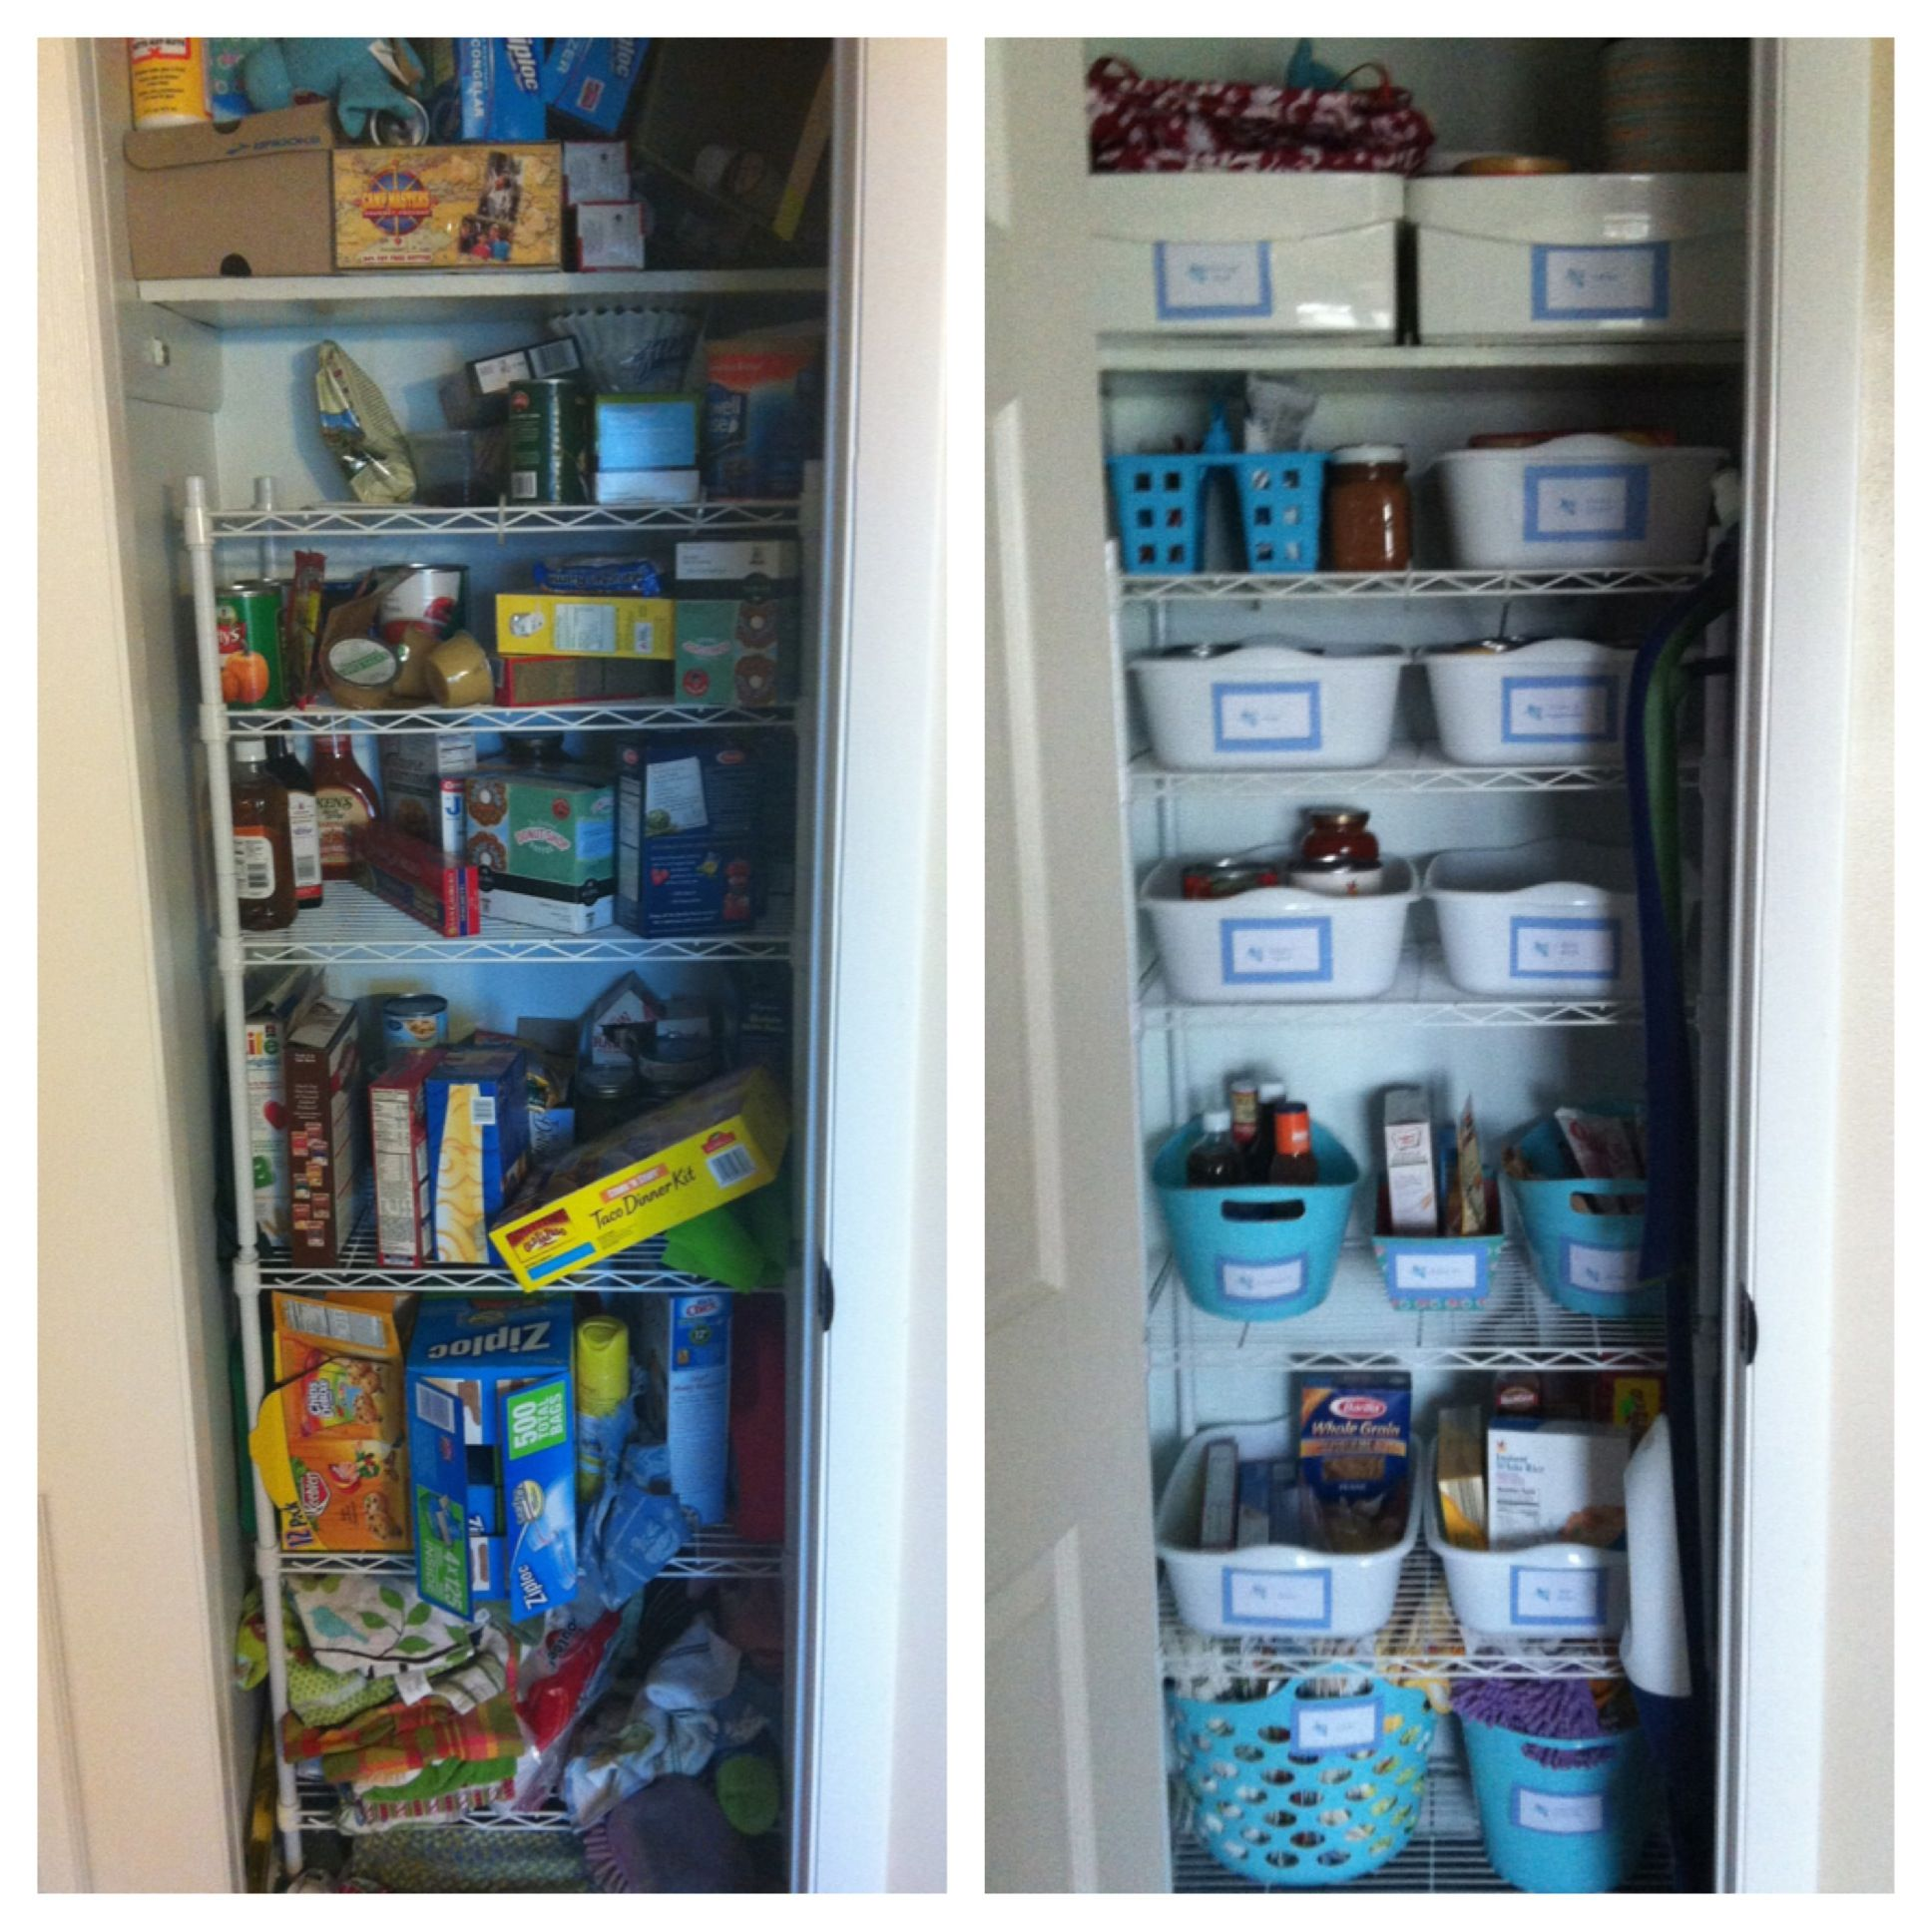 13 Best Kitchen And Pantry Organization Ideas: My $13 Pantry Makeover. Bought The White Dish Bins And